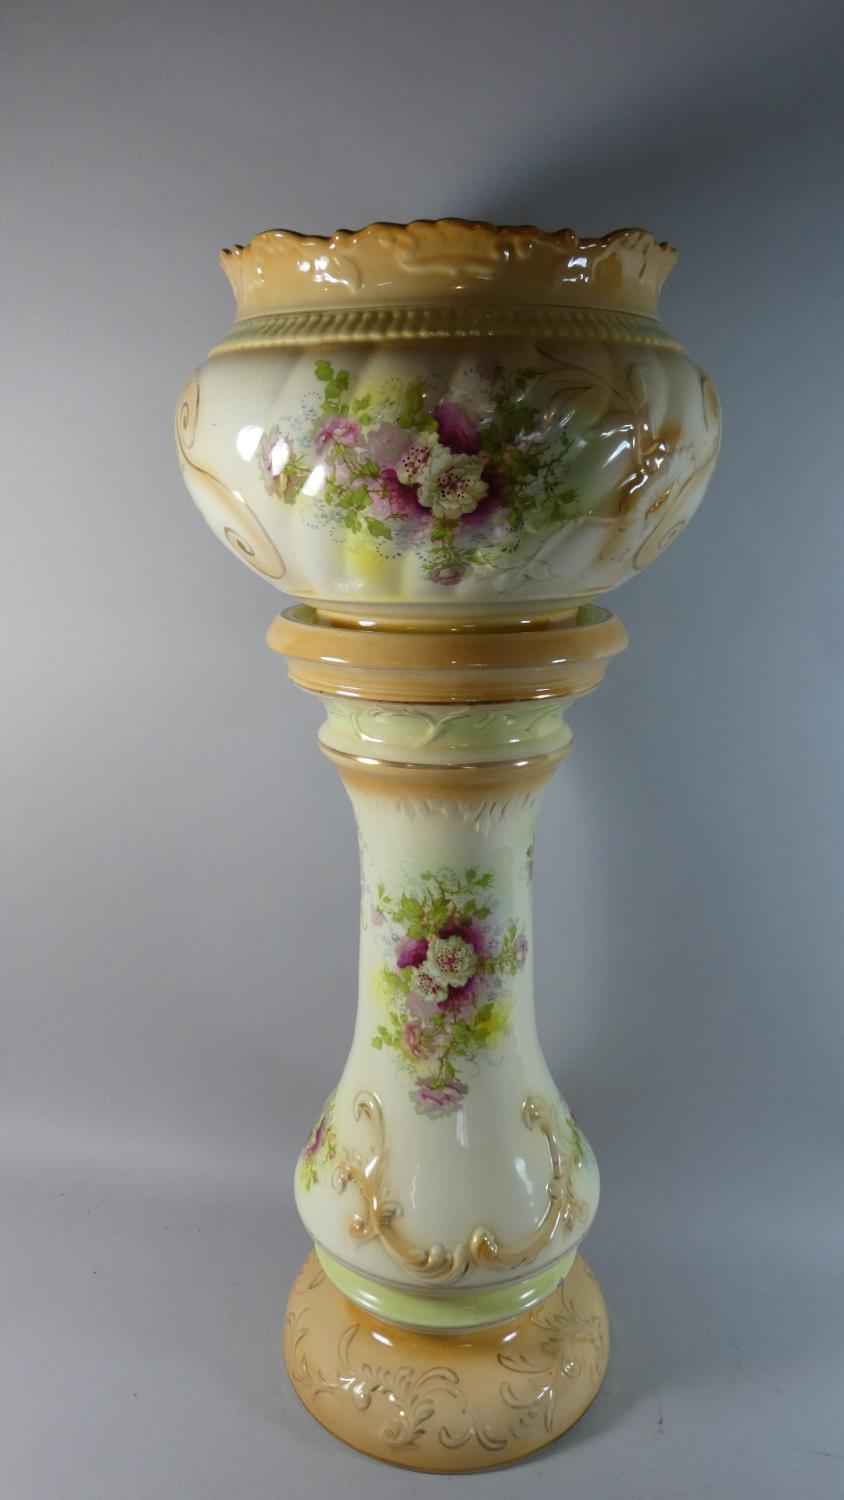 Lot 36 - An Edwardian Ceramic Jardiniere on Stand with Floral Decoration, 82.5cm High